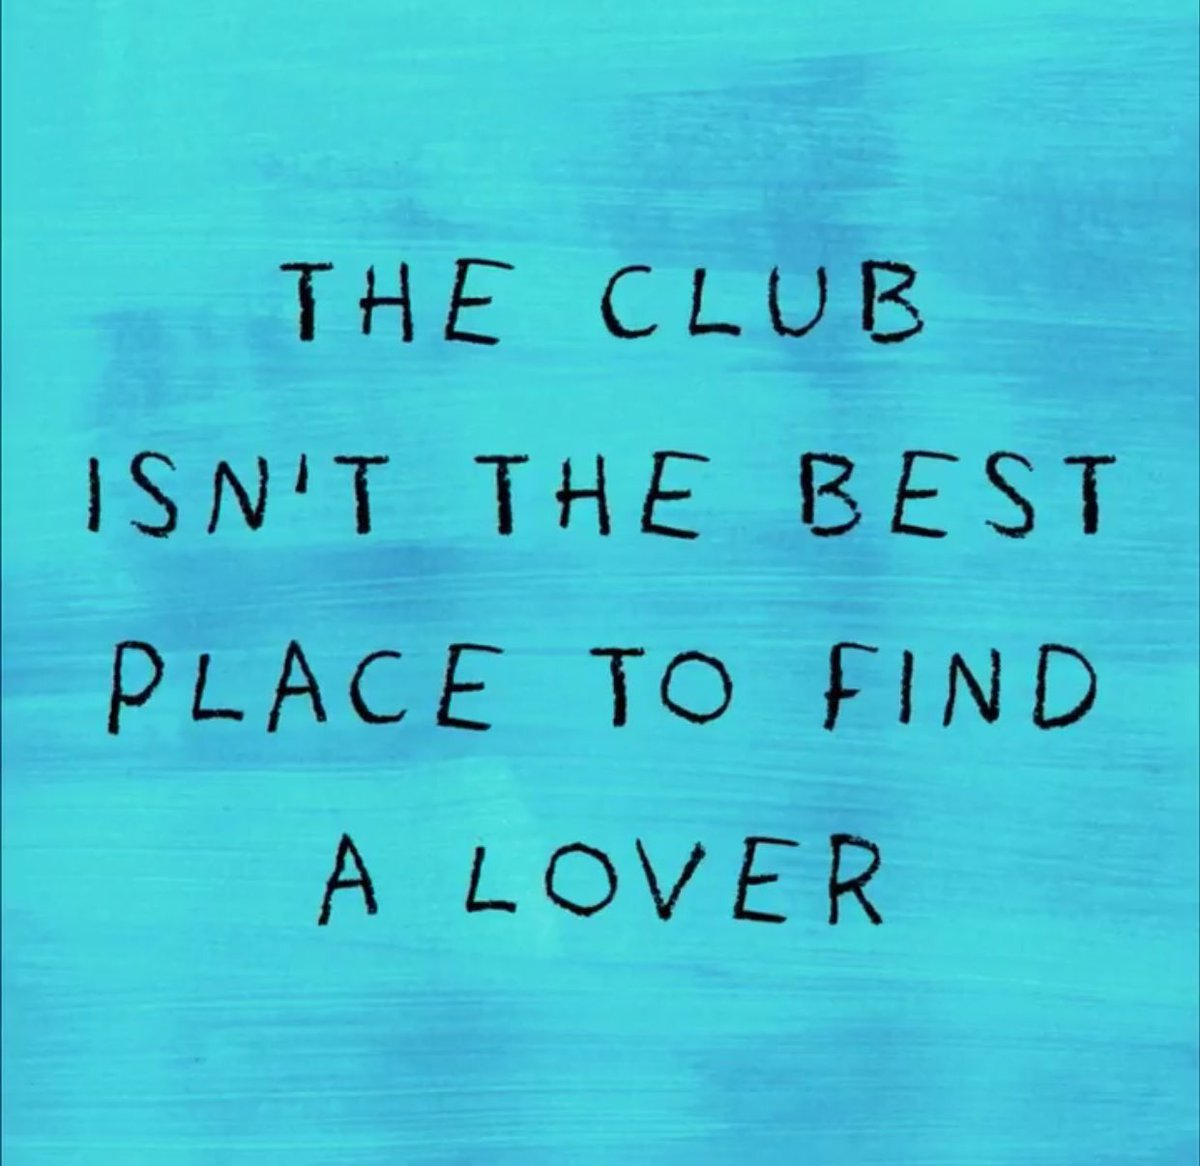 The club is the best place to find love